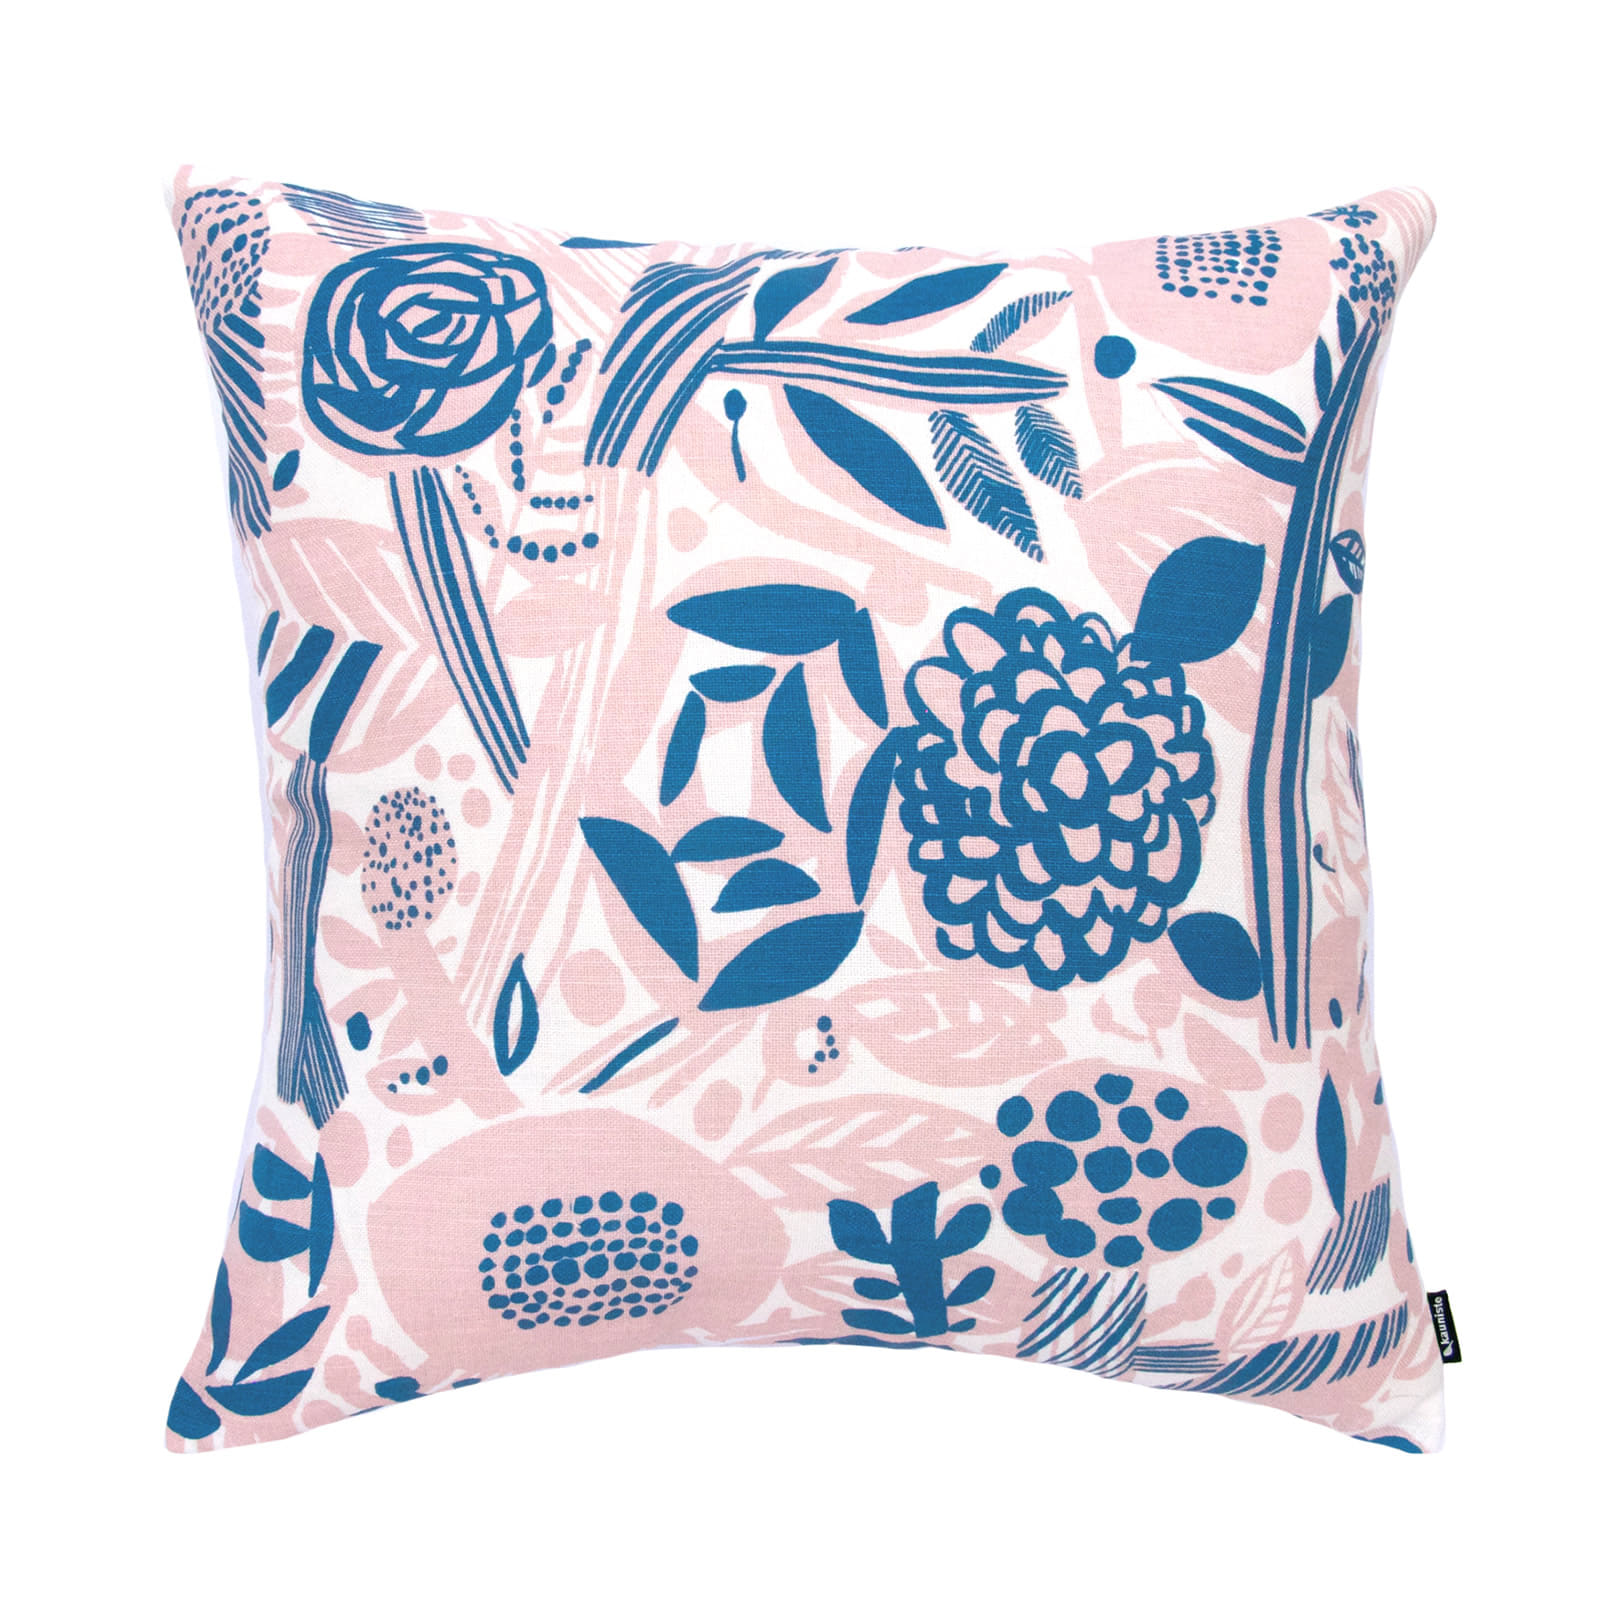 Potpourri blue Cushion Cover